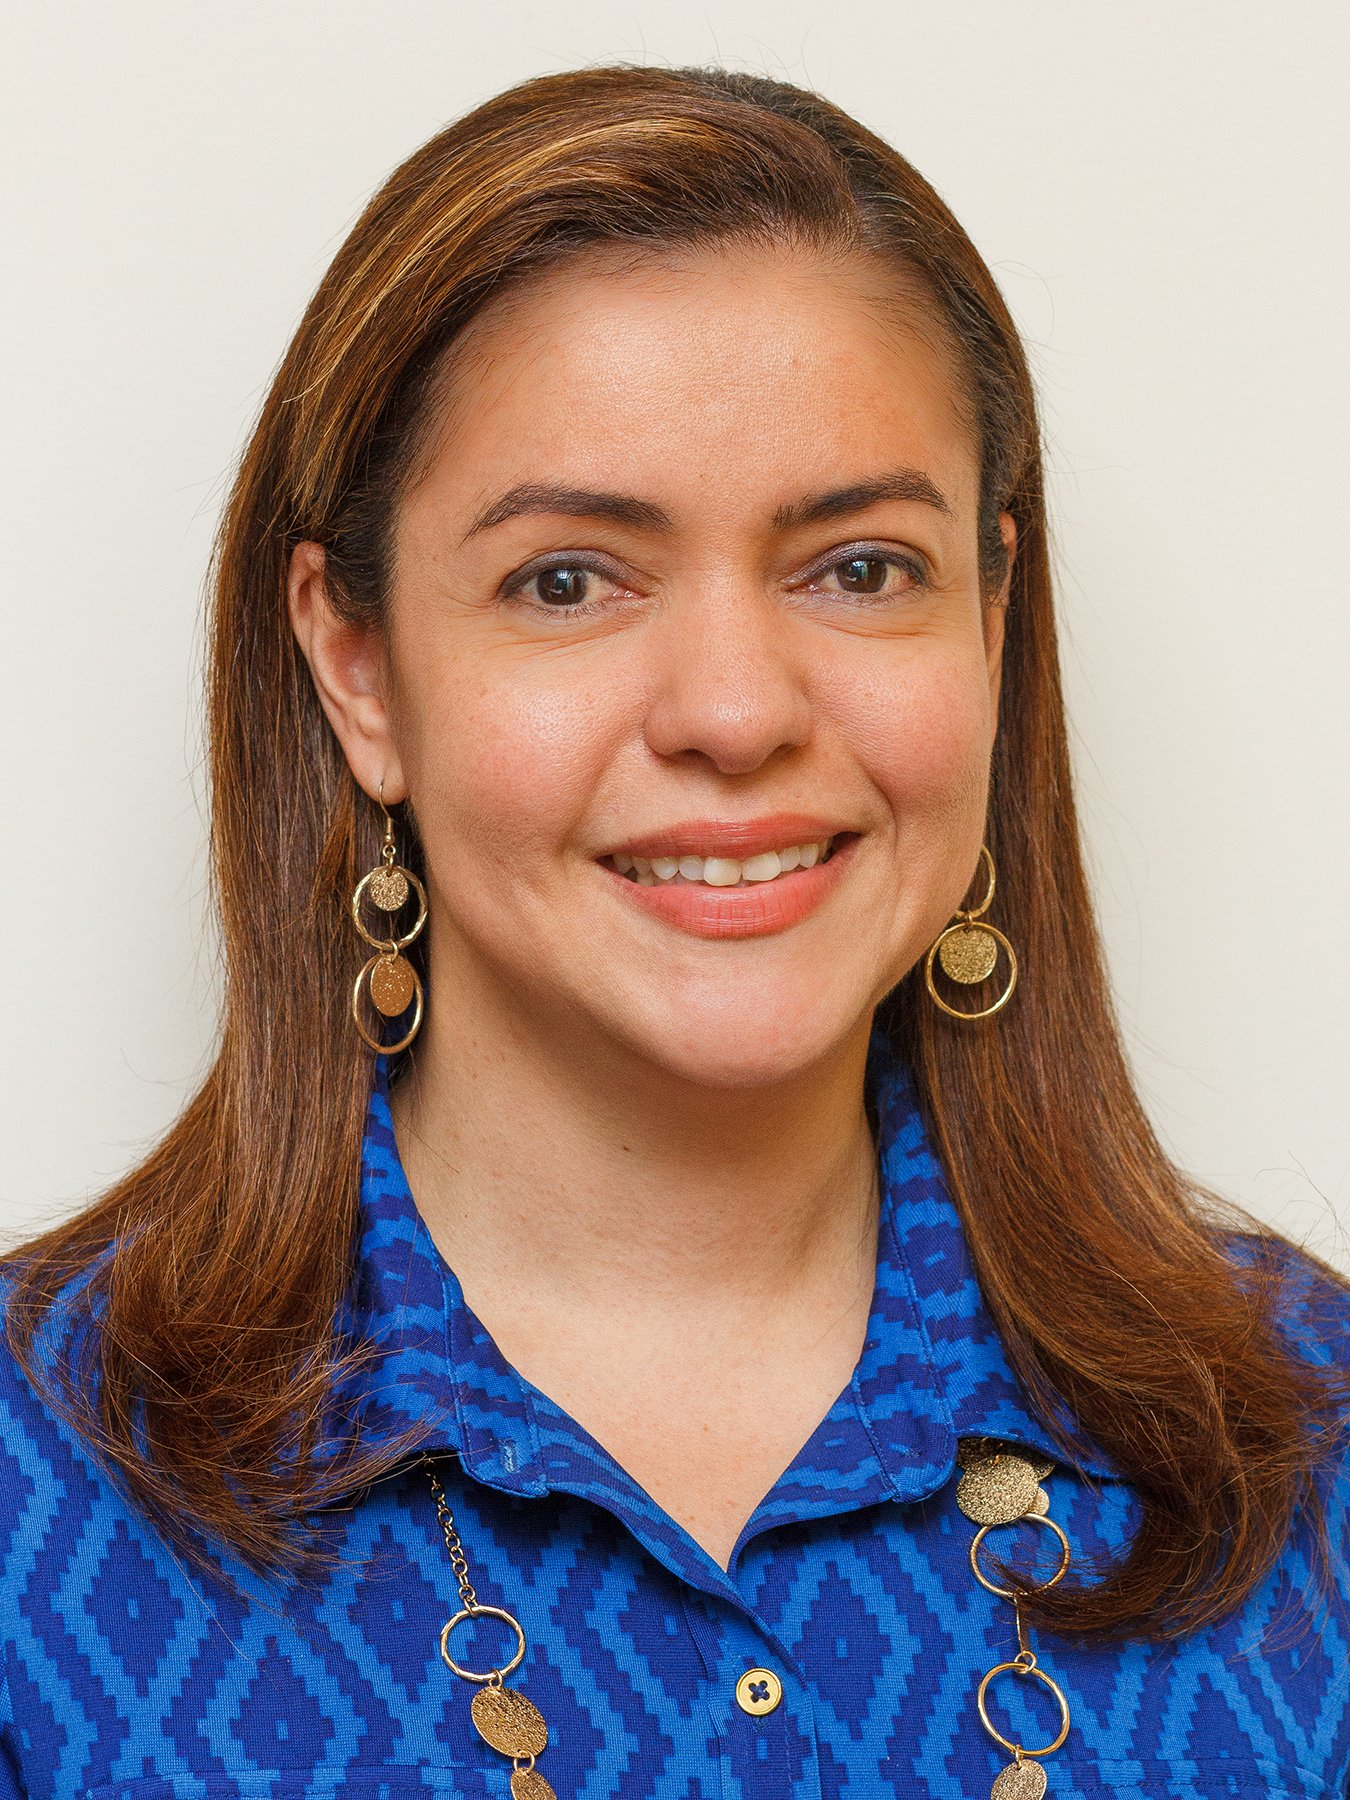 karen salomon escoto